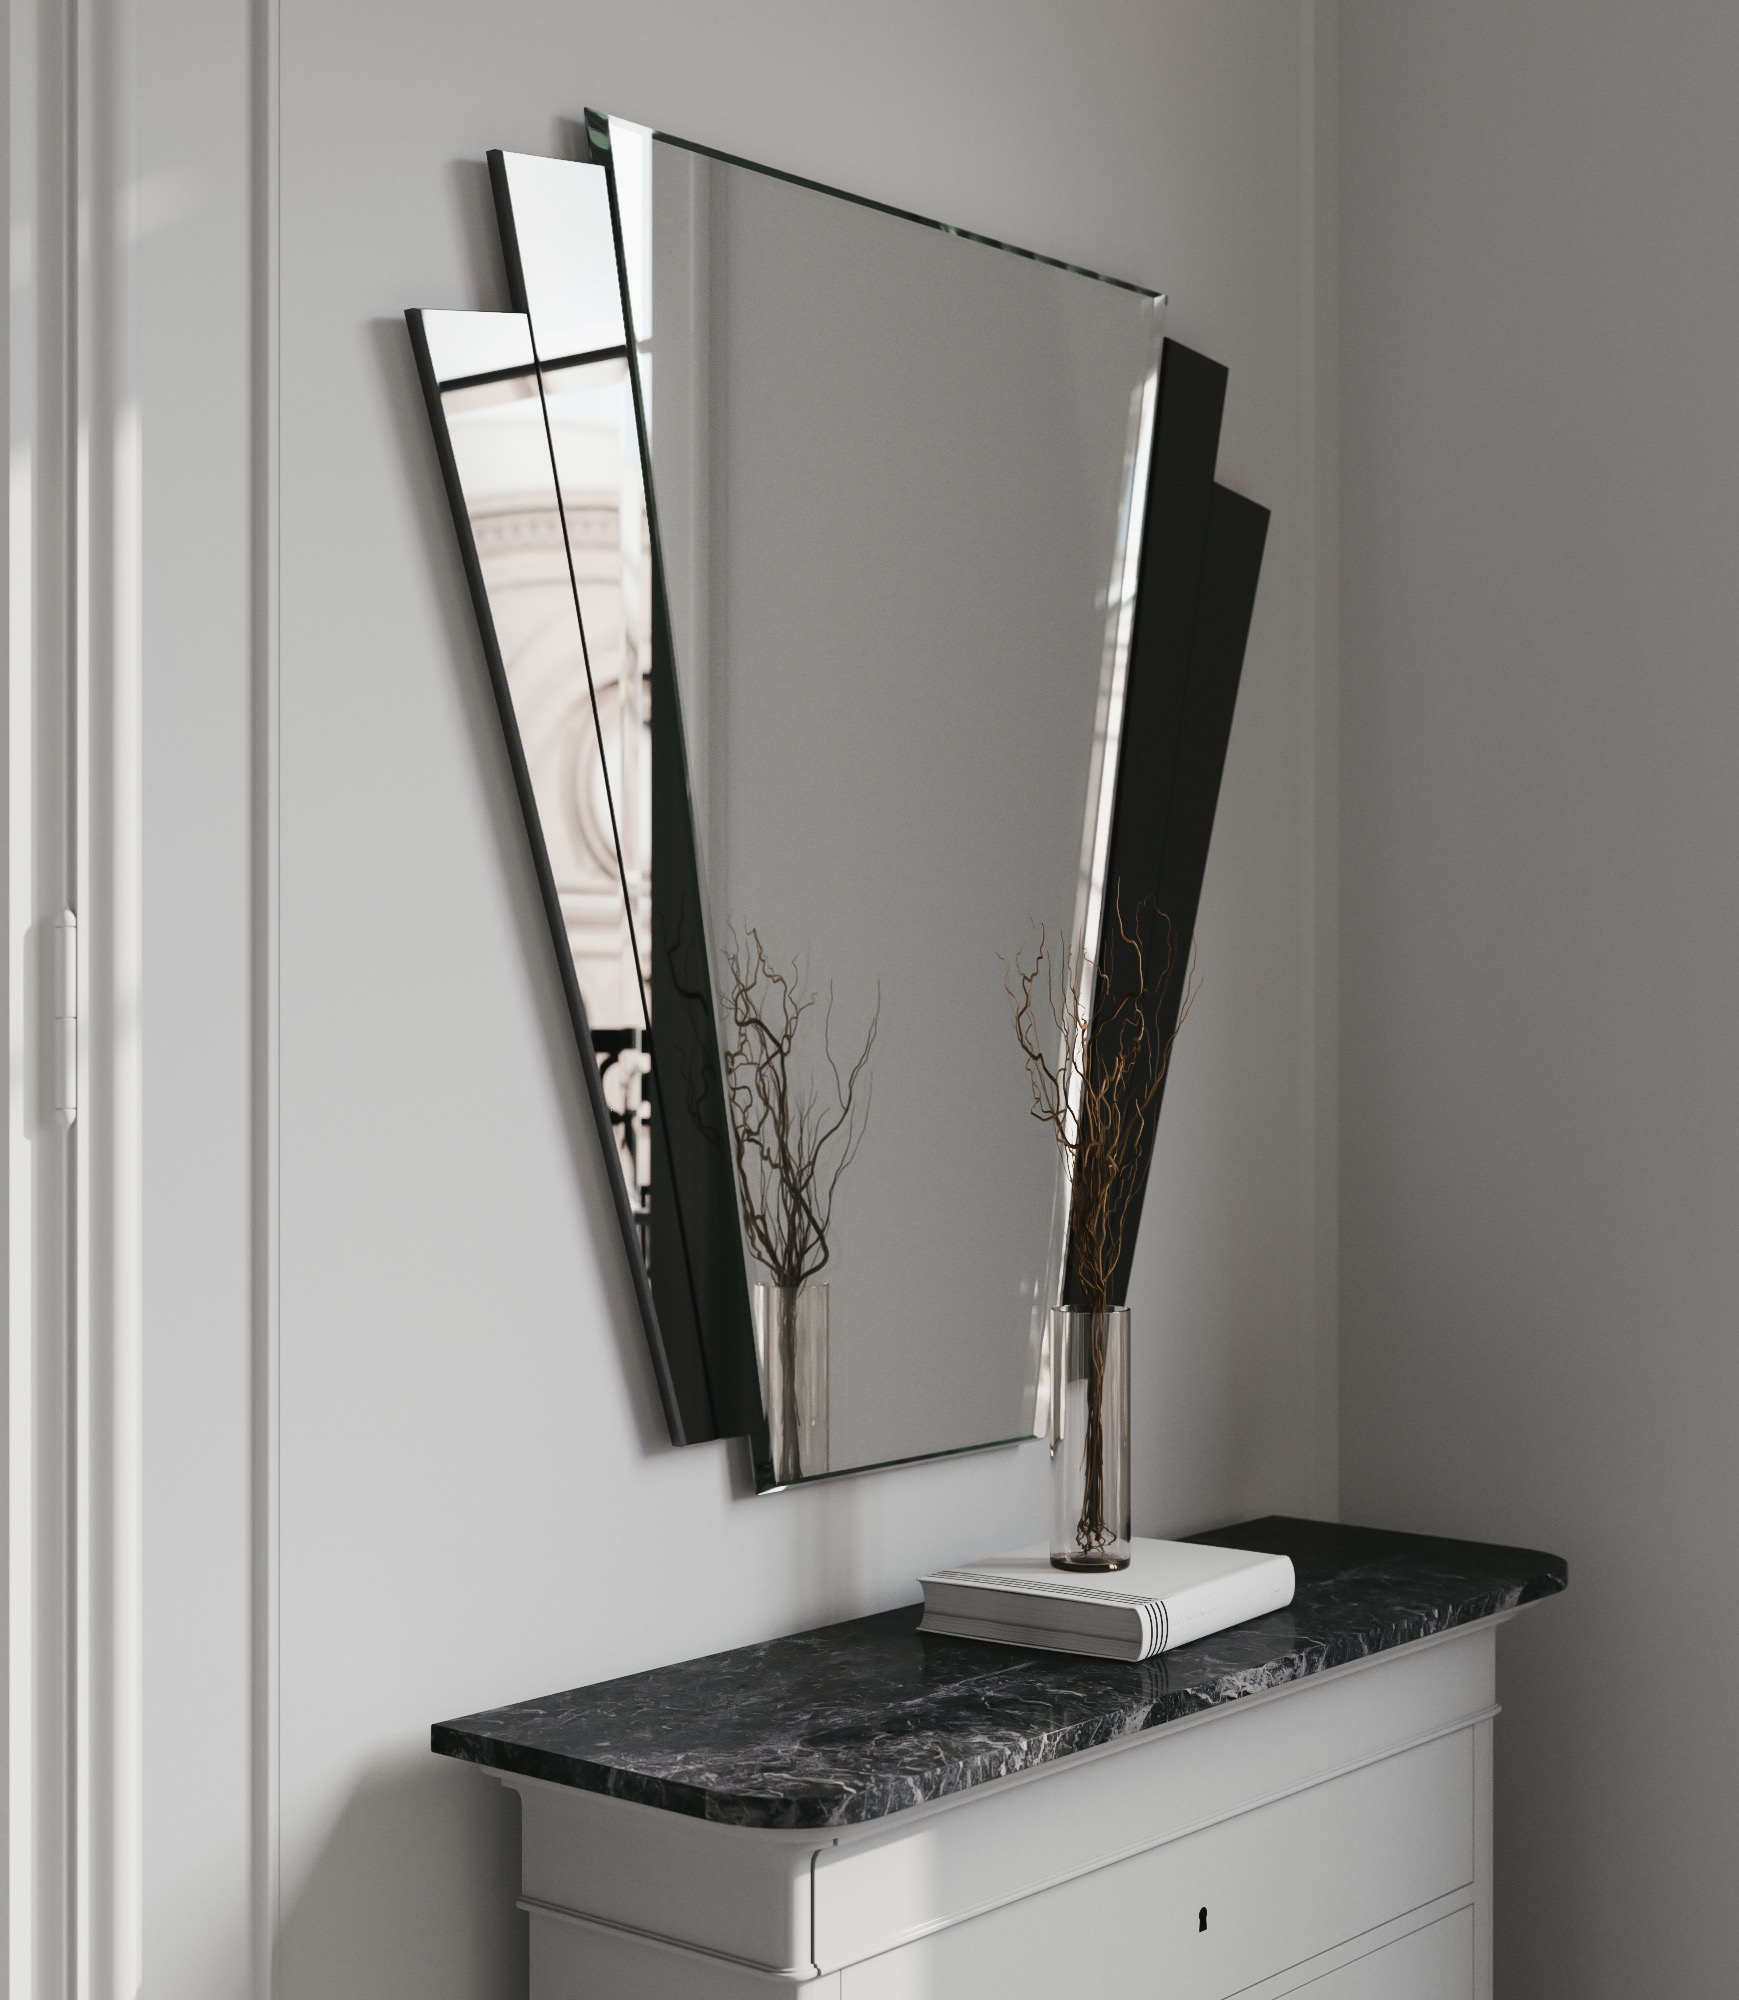 Fantail mirror photographed from side